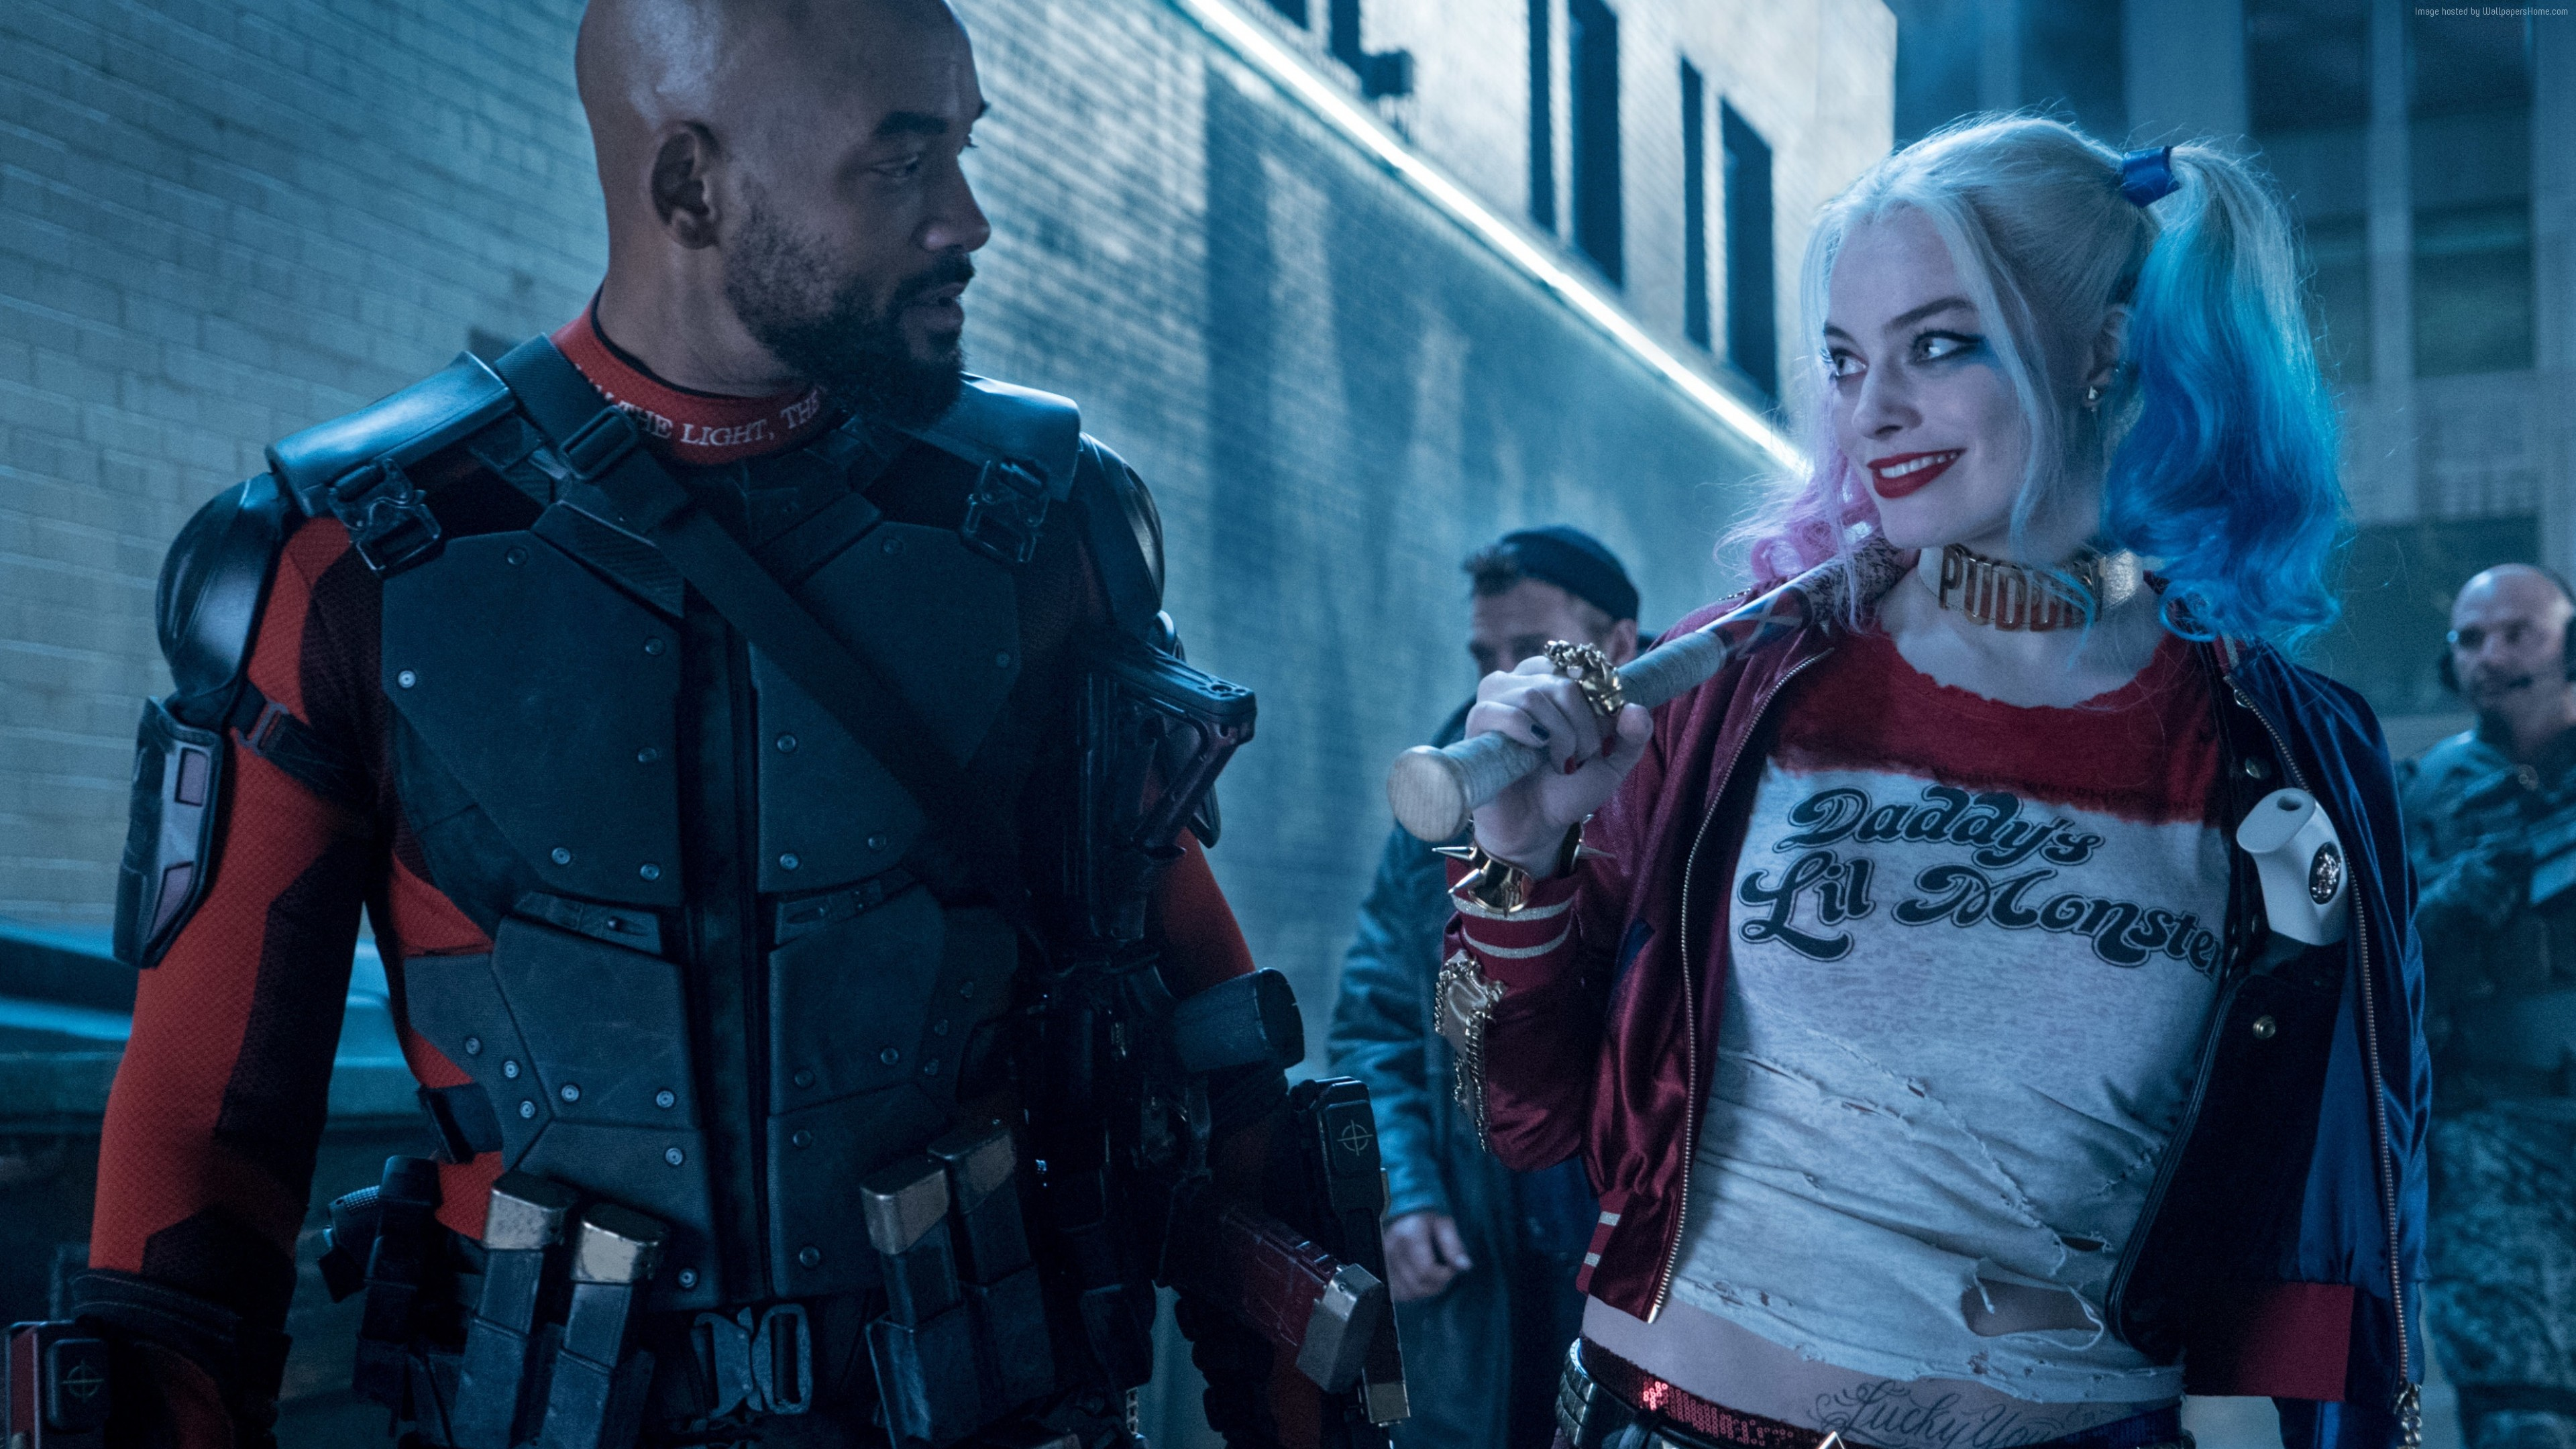 Suicide Squad 4k, HD Movies, 4k Wallpapers, Images